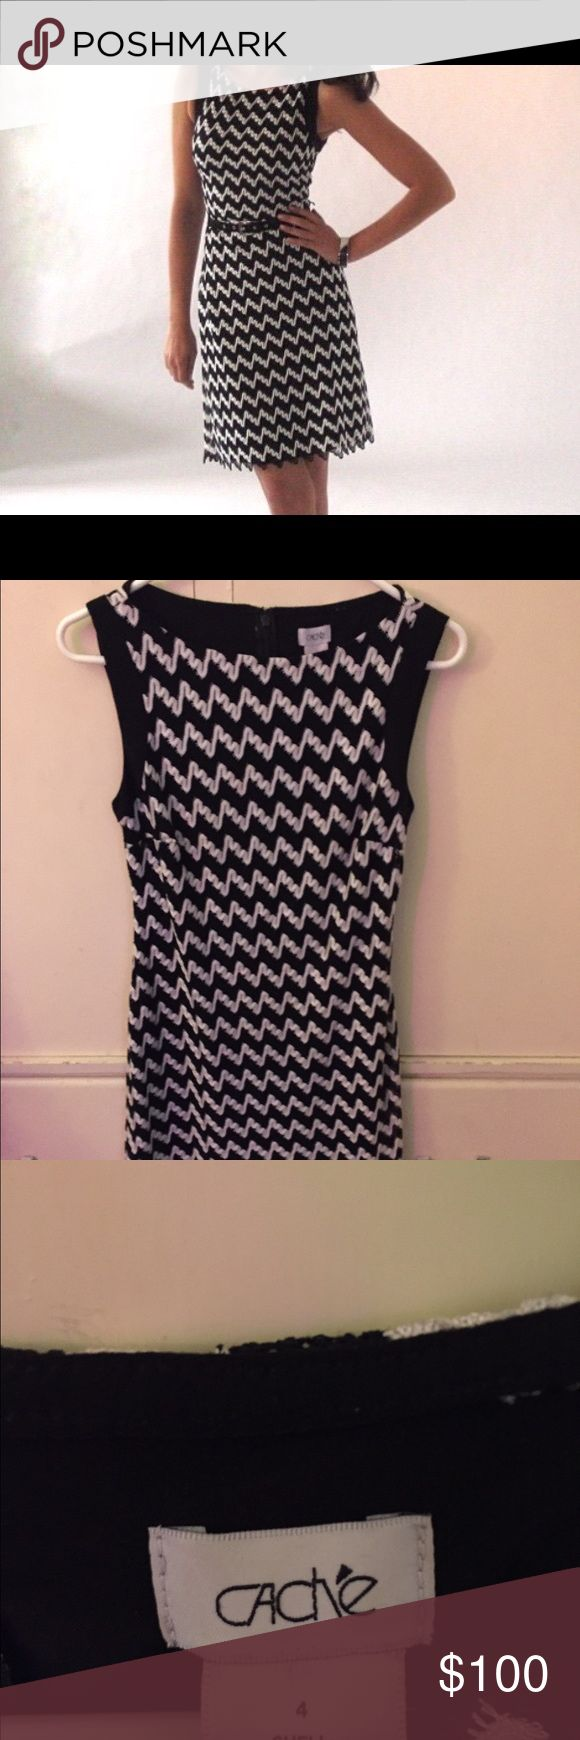 Caché Chevron Print Dress Caché Chevron Print Dress with black slip. Size is 4. Zippered in the back to slip on. Open to offers Cache Dresses Midi